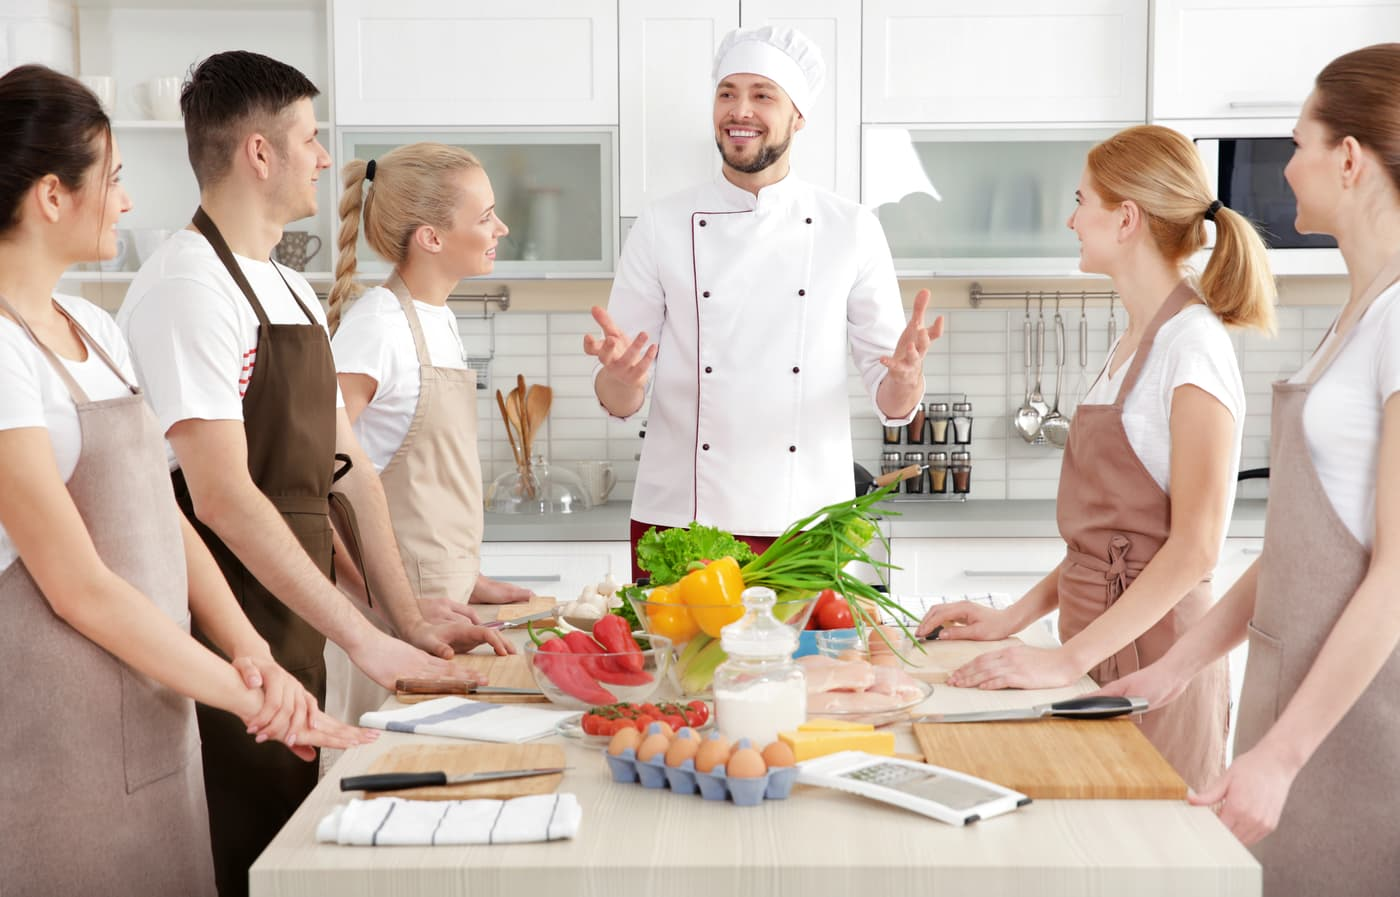 Head chef and students learning to become chefs